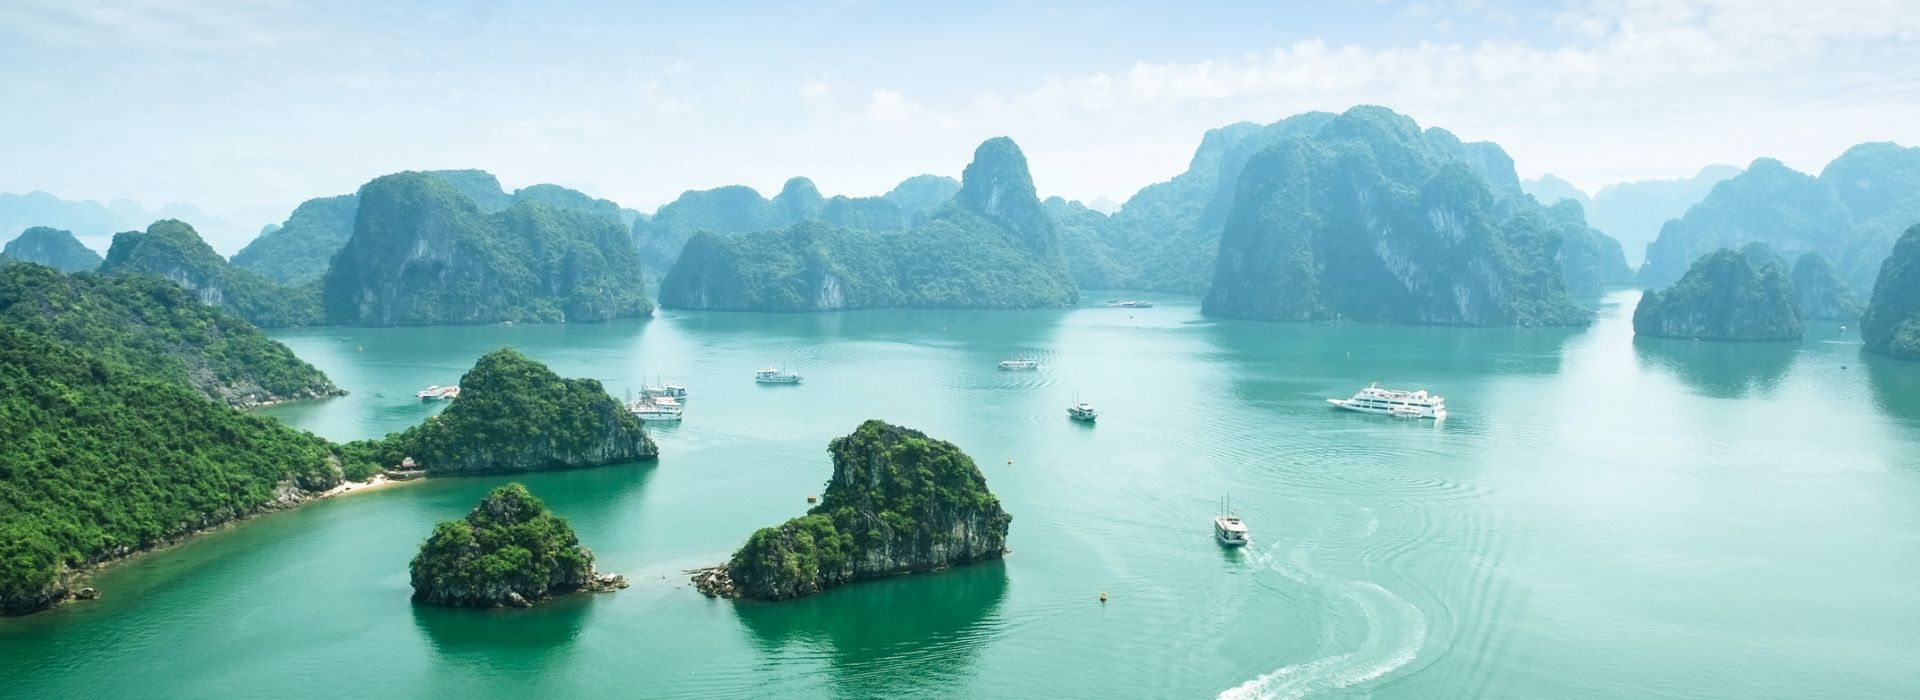 City sightseeing Tours in Halong Bay